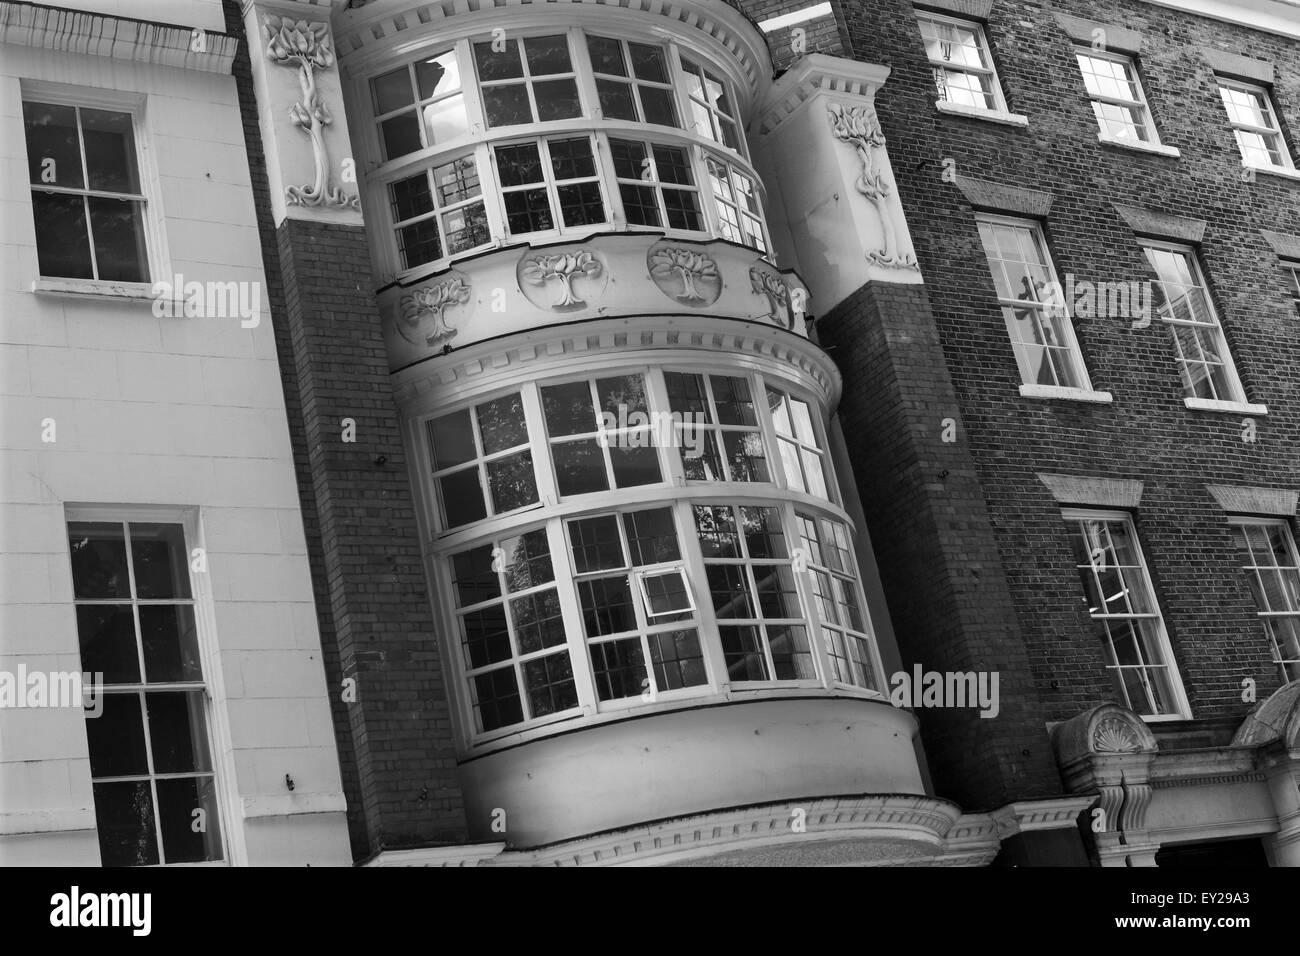 A section of buildings in Soho Square, London, England. - Stock Image